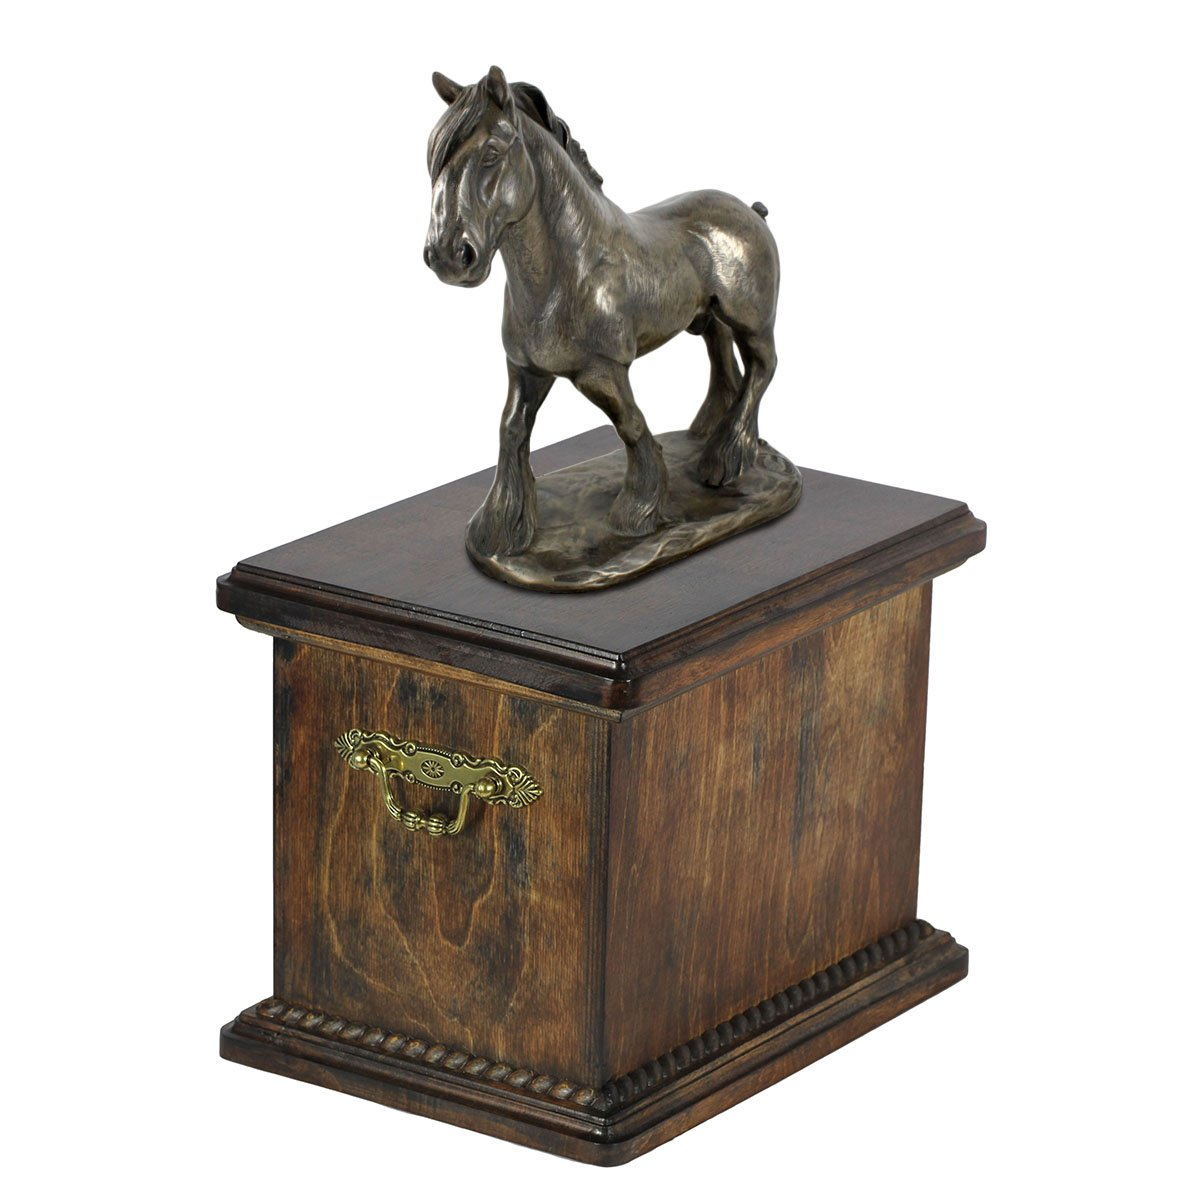 Shire, urn for horse's ashes, with horse statue, une urne pour les cheval cendres, ArtDog